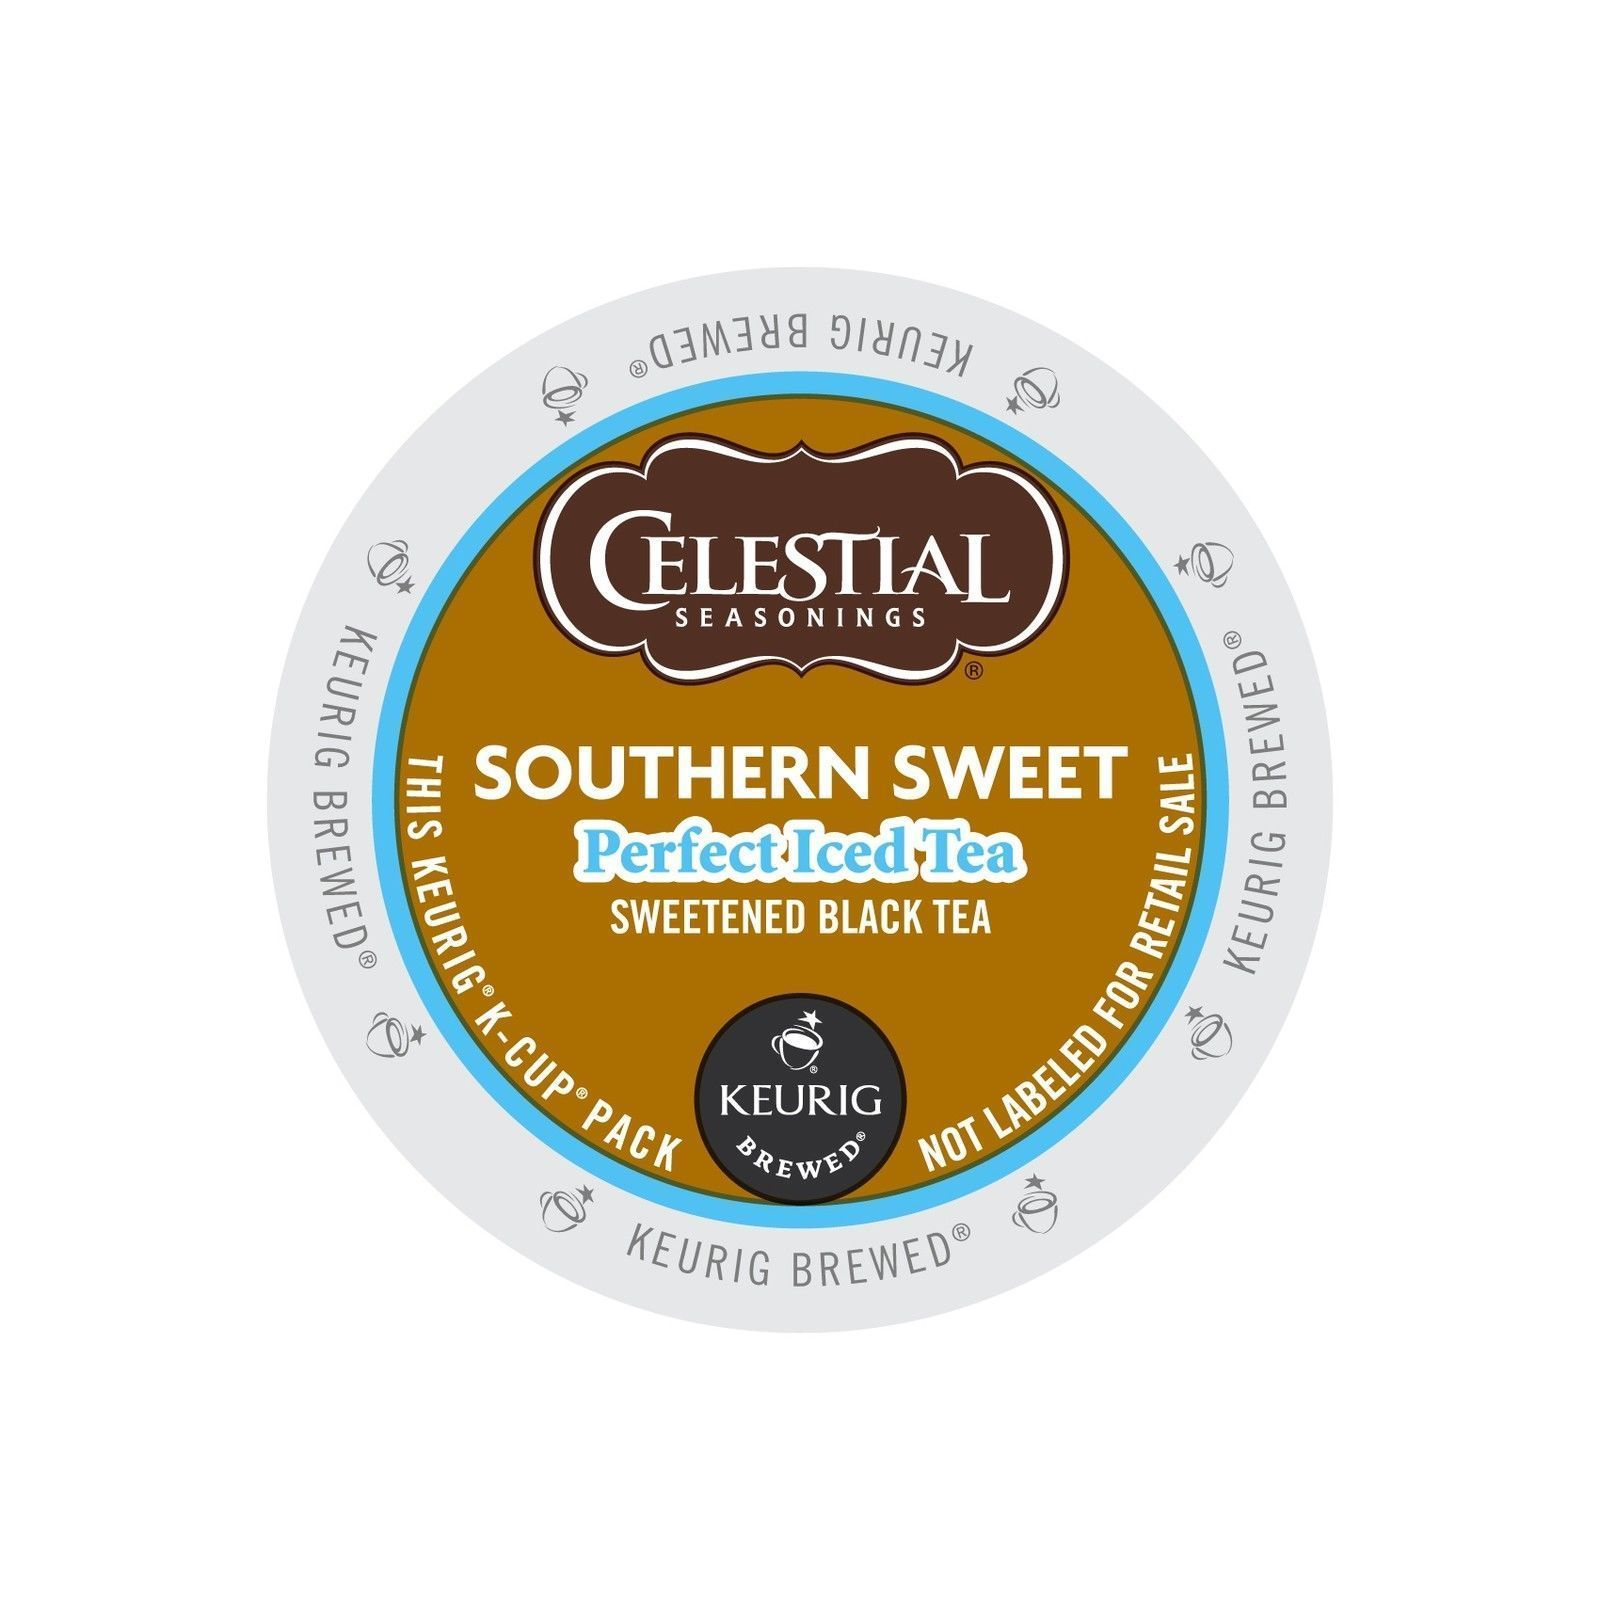 Celestial Seasonings Southern Sweet Perfect Iced Tea, 44 K cups, FREE SHIPPING  - $38.99